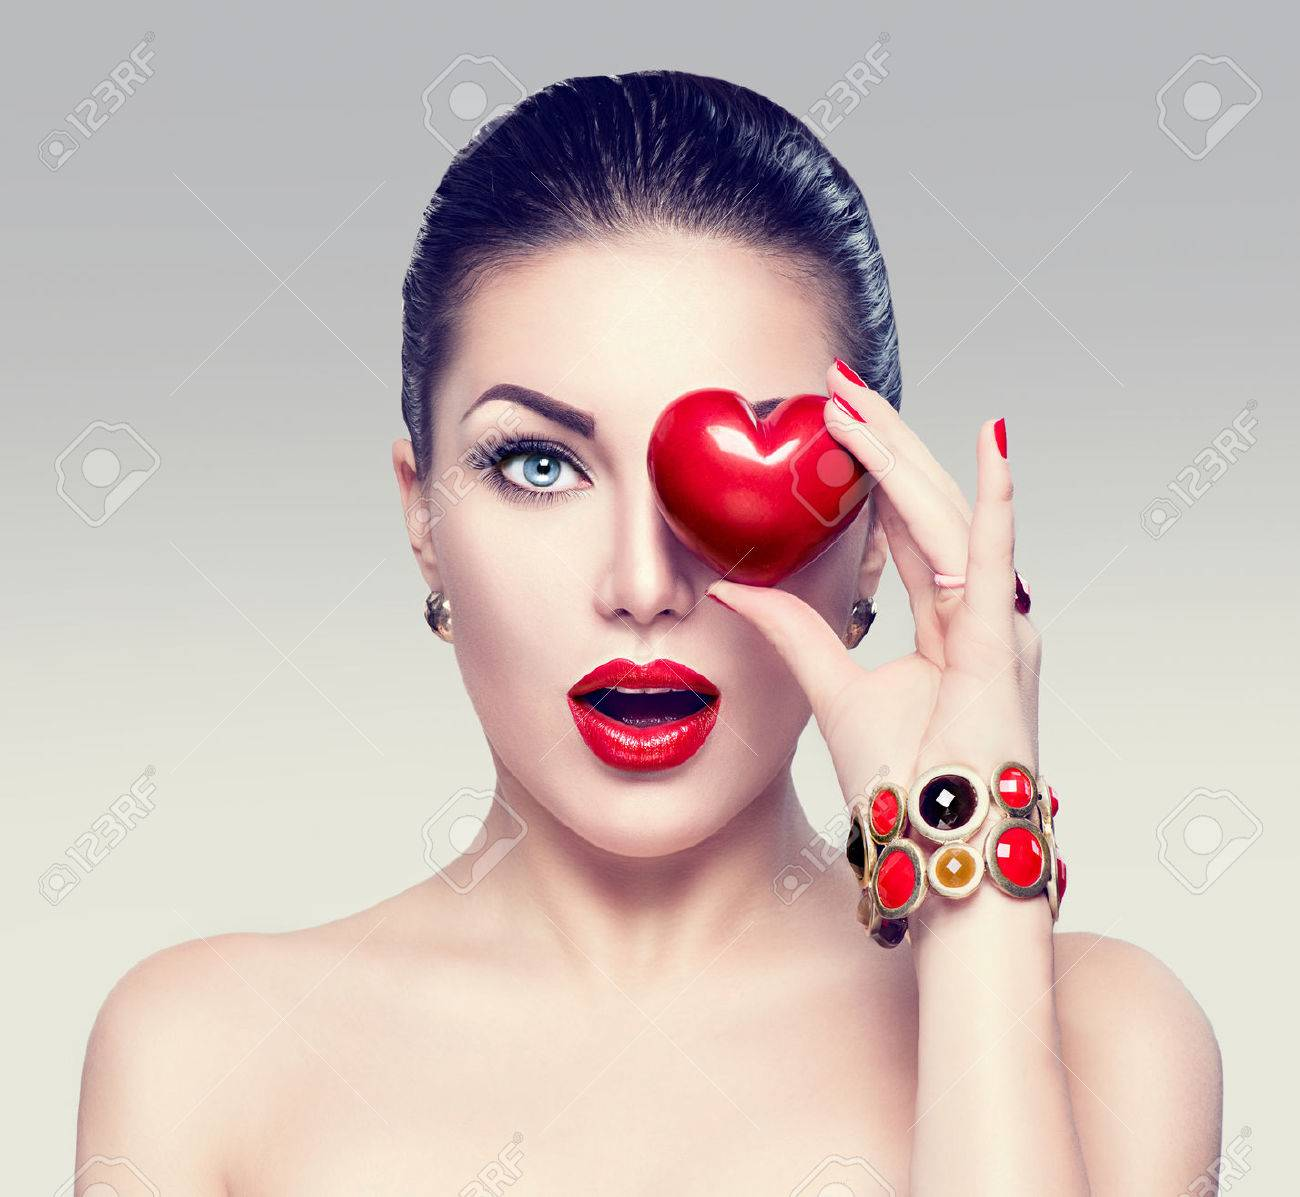 Fashion woman with red heart. Valentine's day art portrait - 51892247